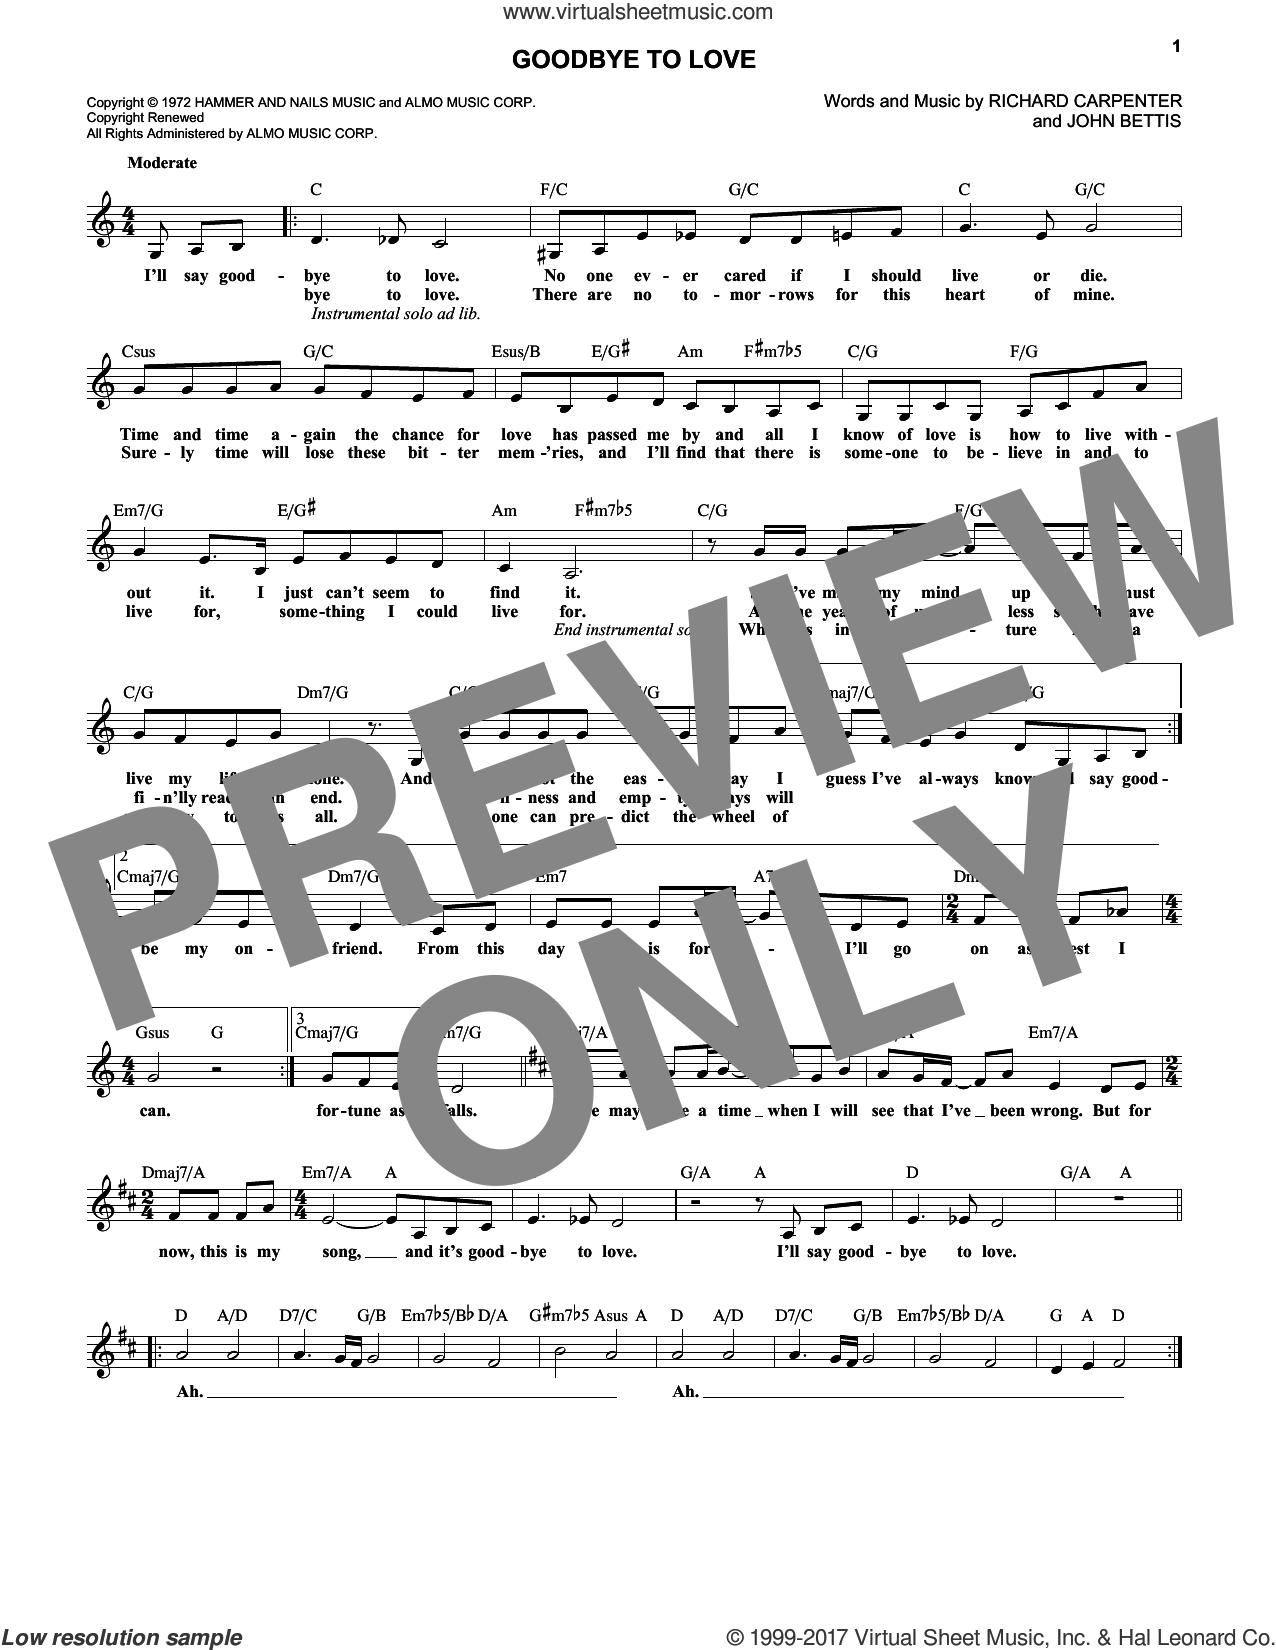 Goodbye To Love sheet music for voice and other instruments (fake book) by John Bettis and Carpenters, intermediate. Score Image Preview.